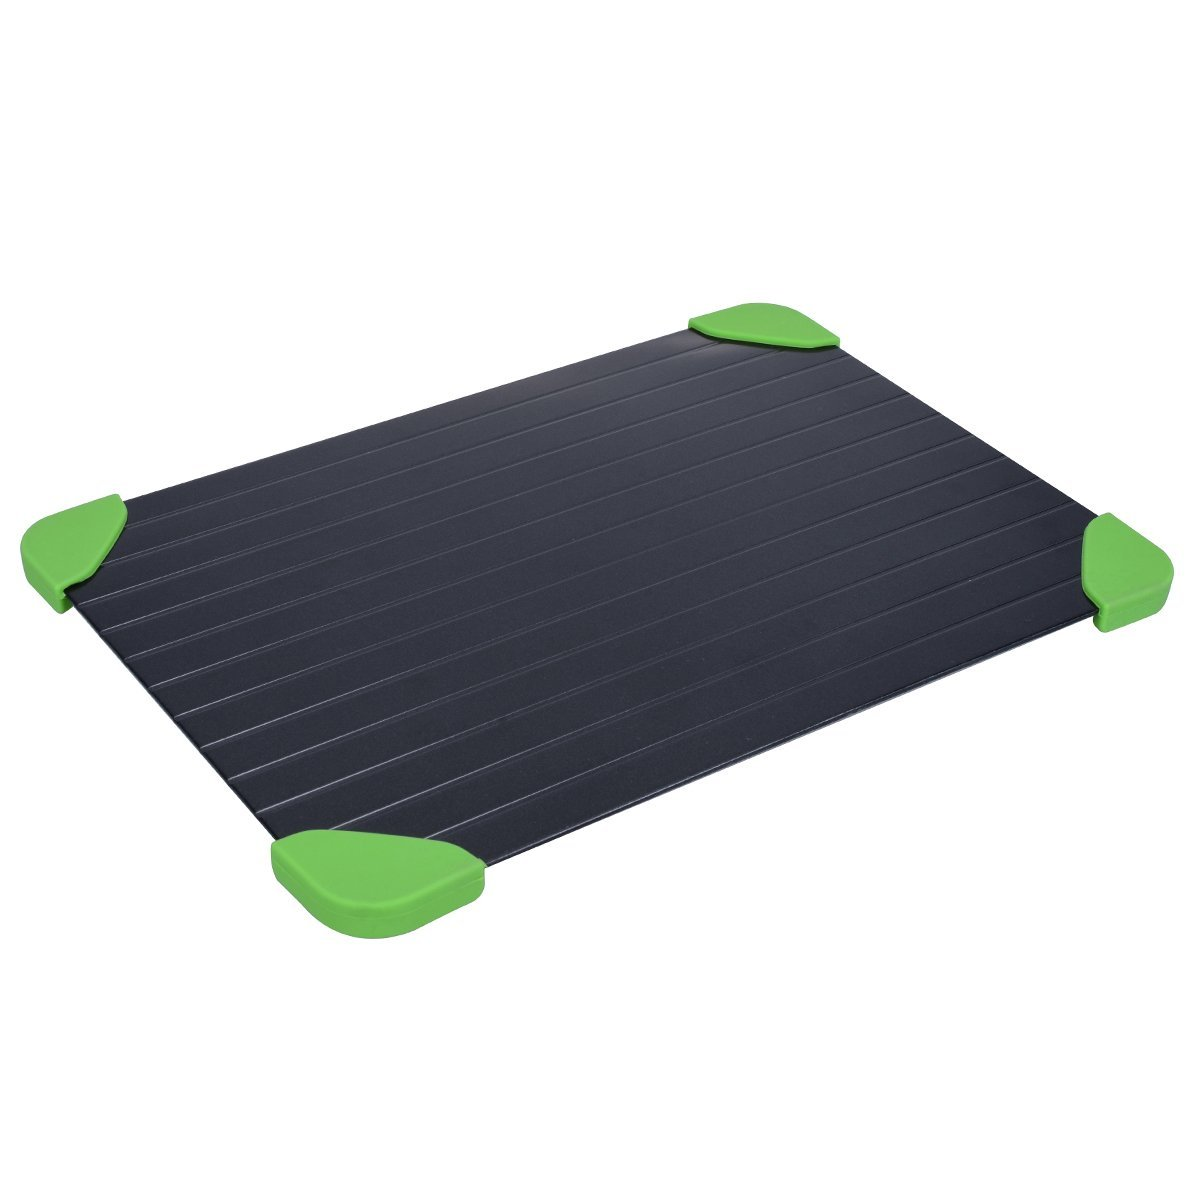 YoungRich Defrosting Tray with 4 Green Rubber Protective Corner Case rapid thaw meat defrosting tray with No Electricity No Chemicals No Microwave for Kitchen